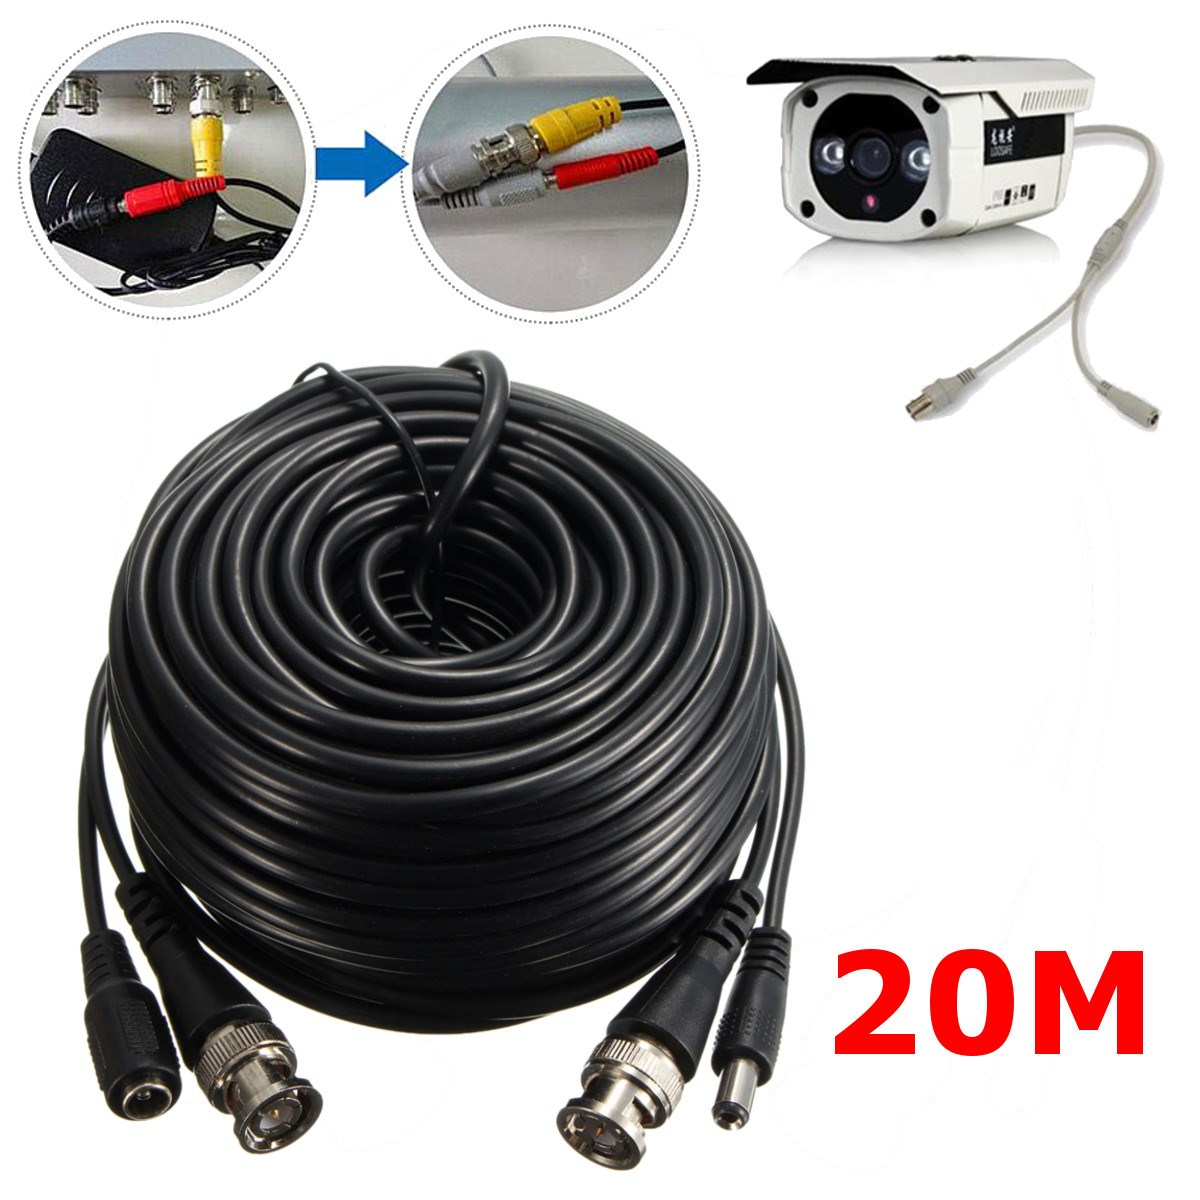 20M 65FT Video Power Cable CCTV Security Camera Extension Wire DVR BNC RCA Cord BNC Car Camera Accessories<br><br>Aliexpress